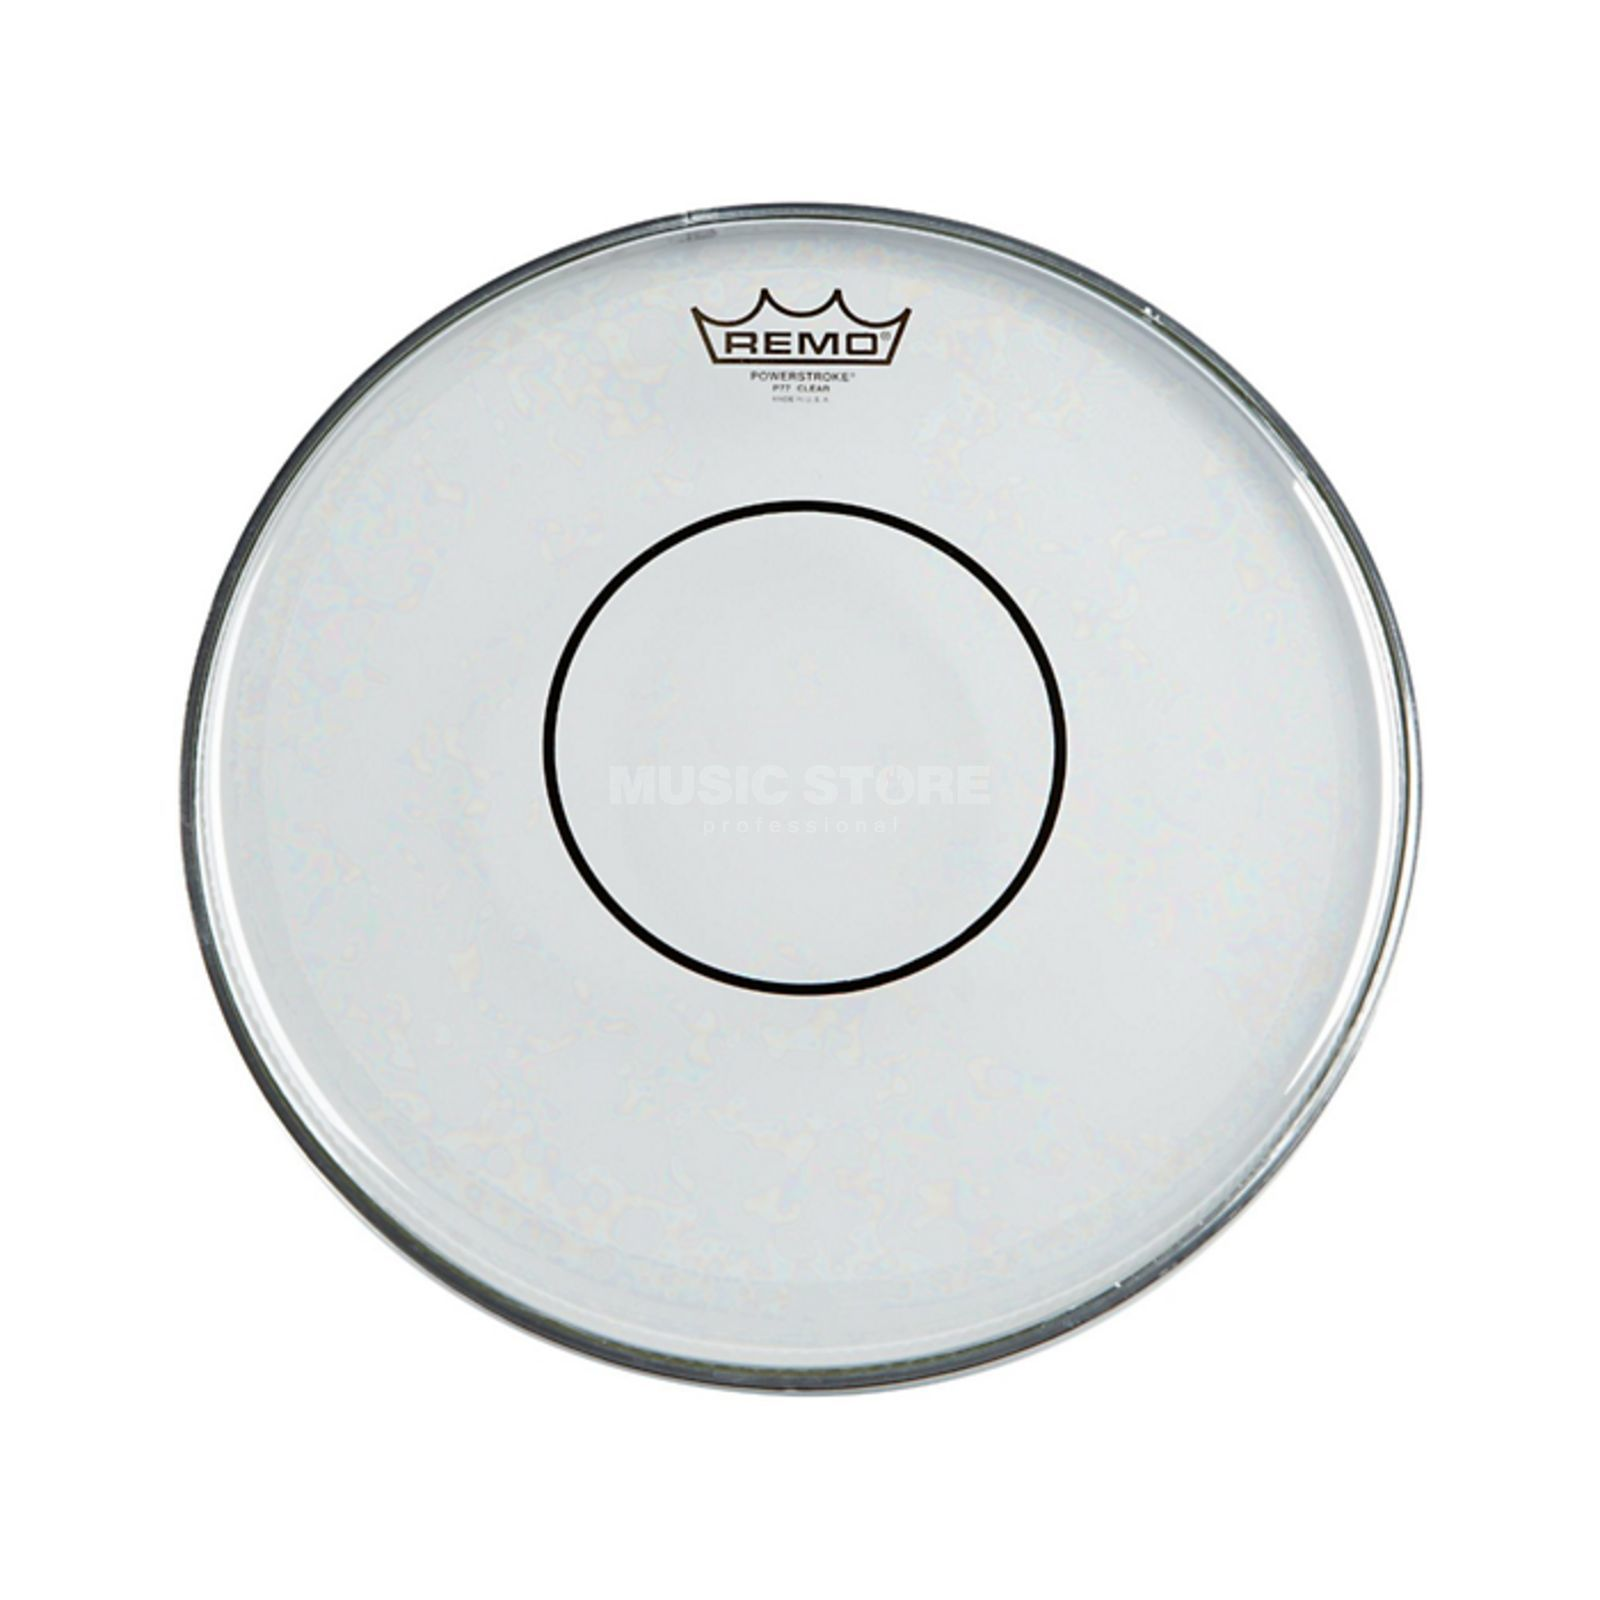 "Remo Powerstroke 77 Clear 13"", Dot, Tom + Snare Batter Image du produit"